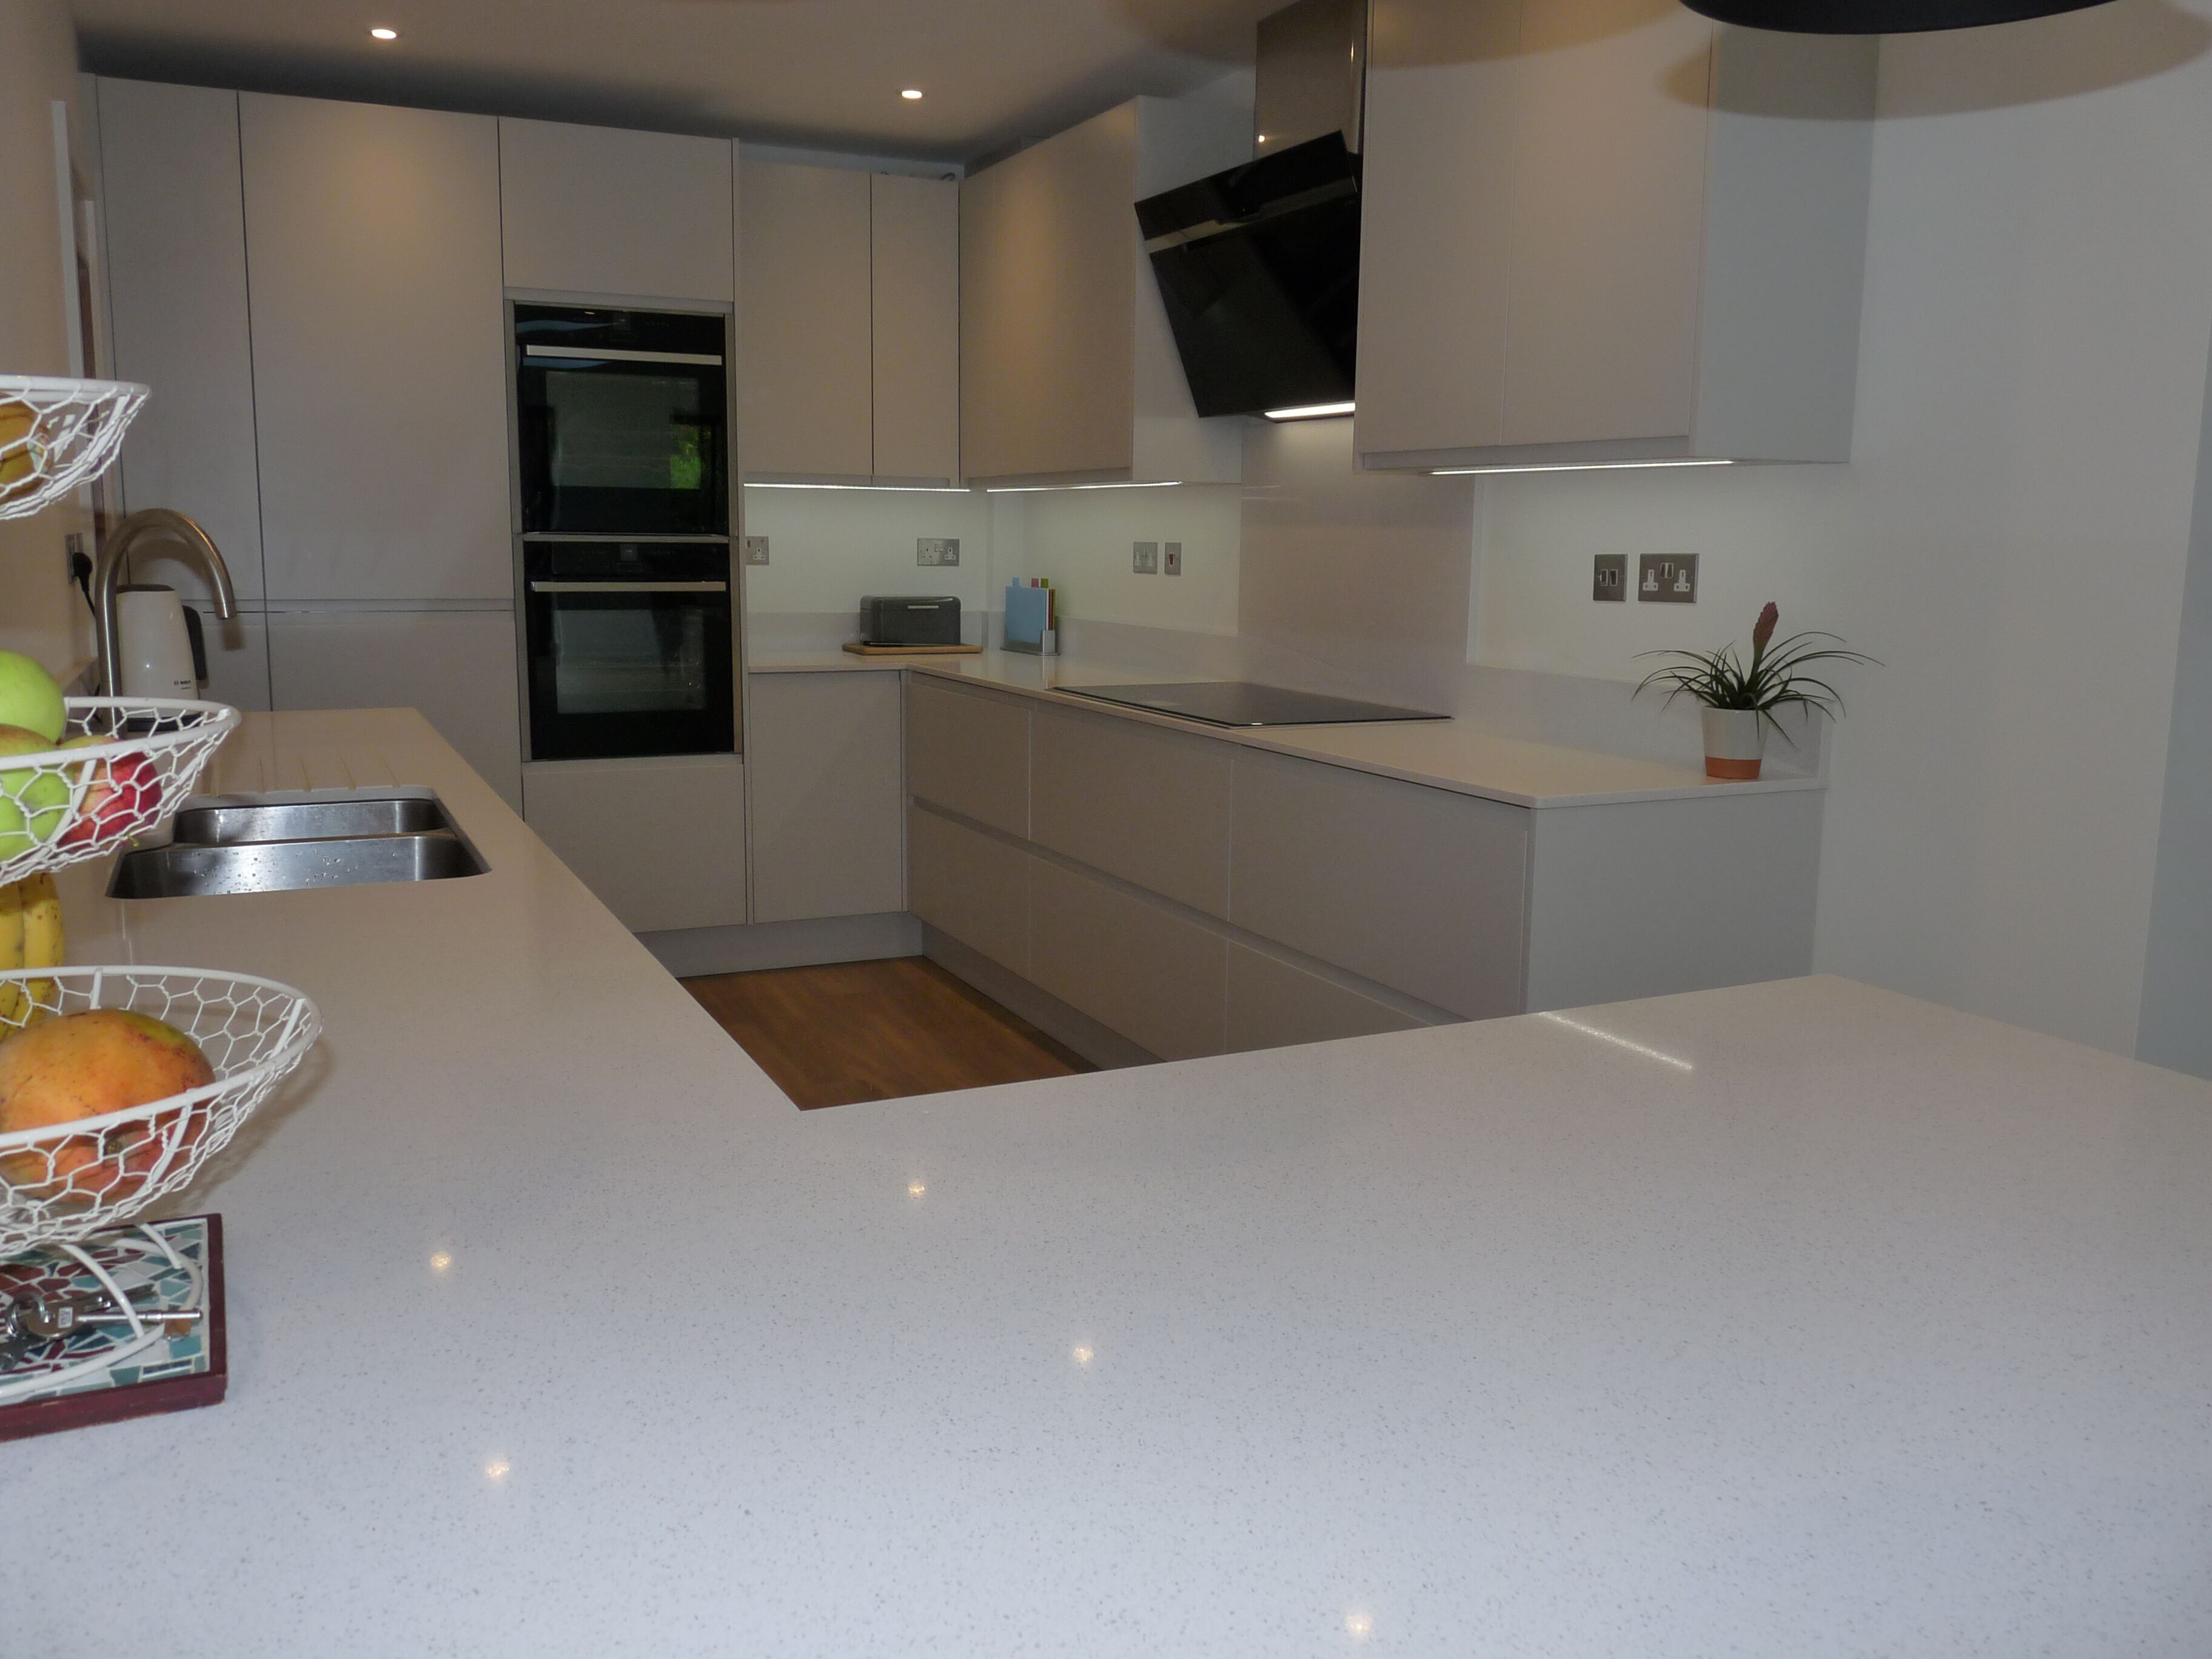 LED under unit lighting in J groove gloss grey kitchen